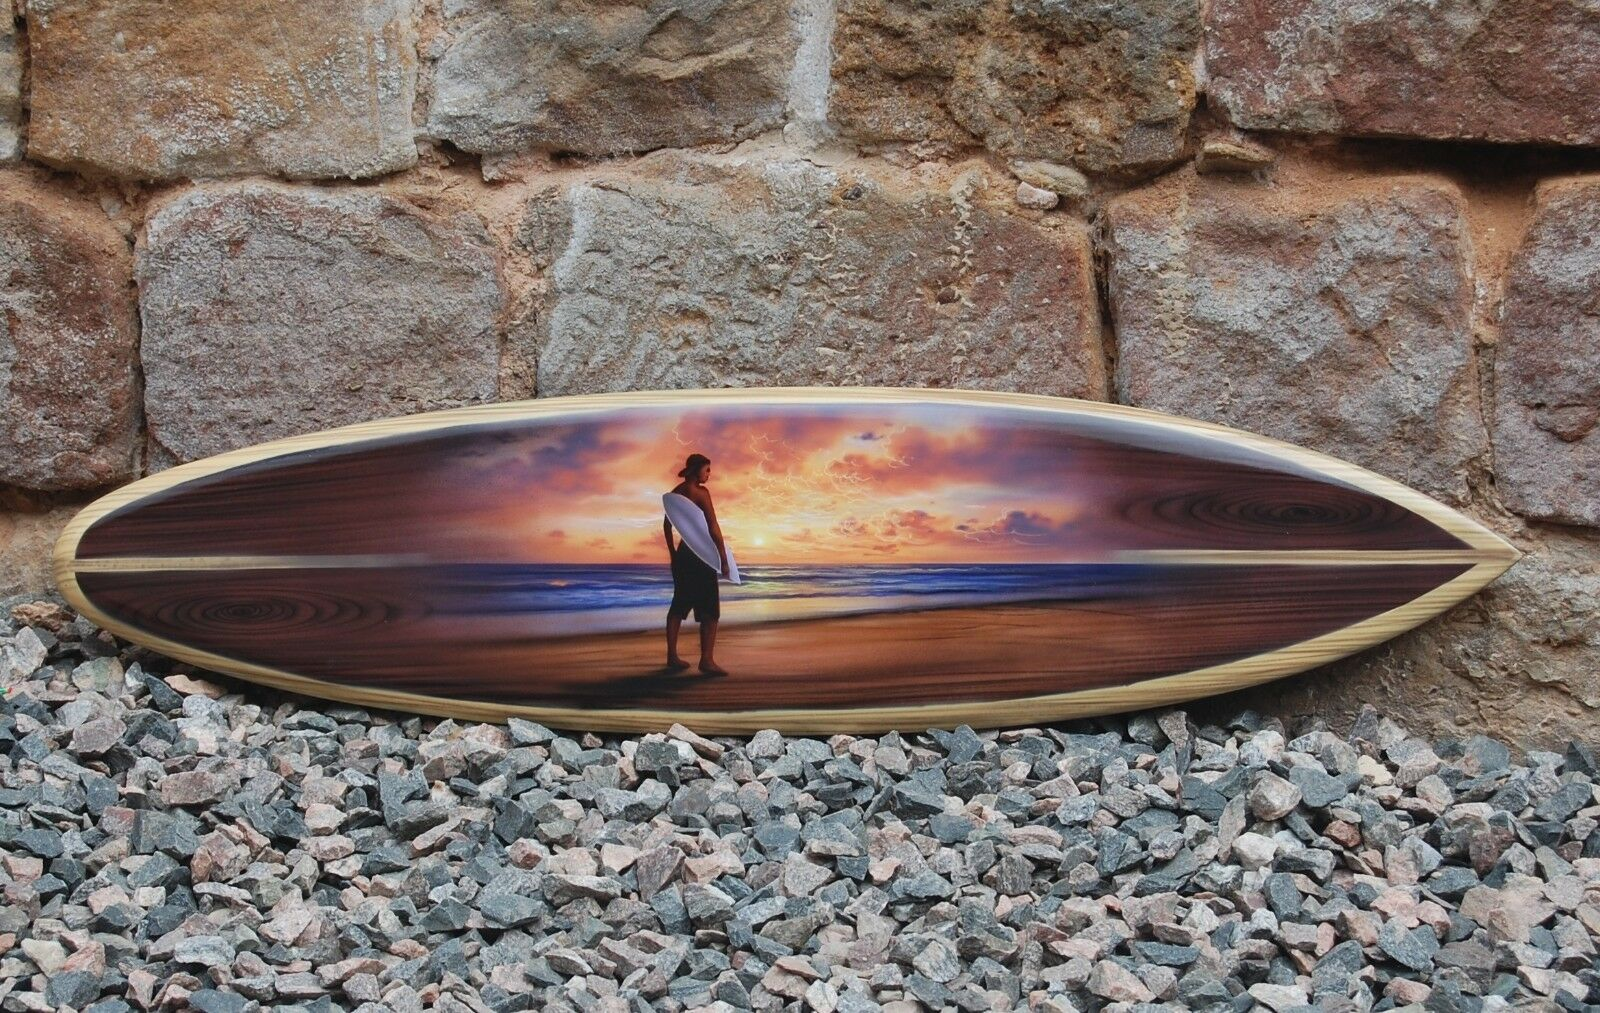 BRAND NEW ORNAMENTAL SOLID WOOD 100cm SURFBOARD SURFER SUNSET DESIGN   su100E6